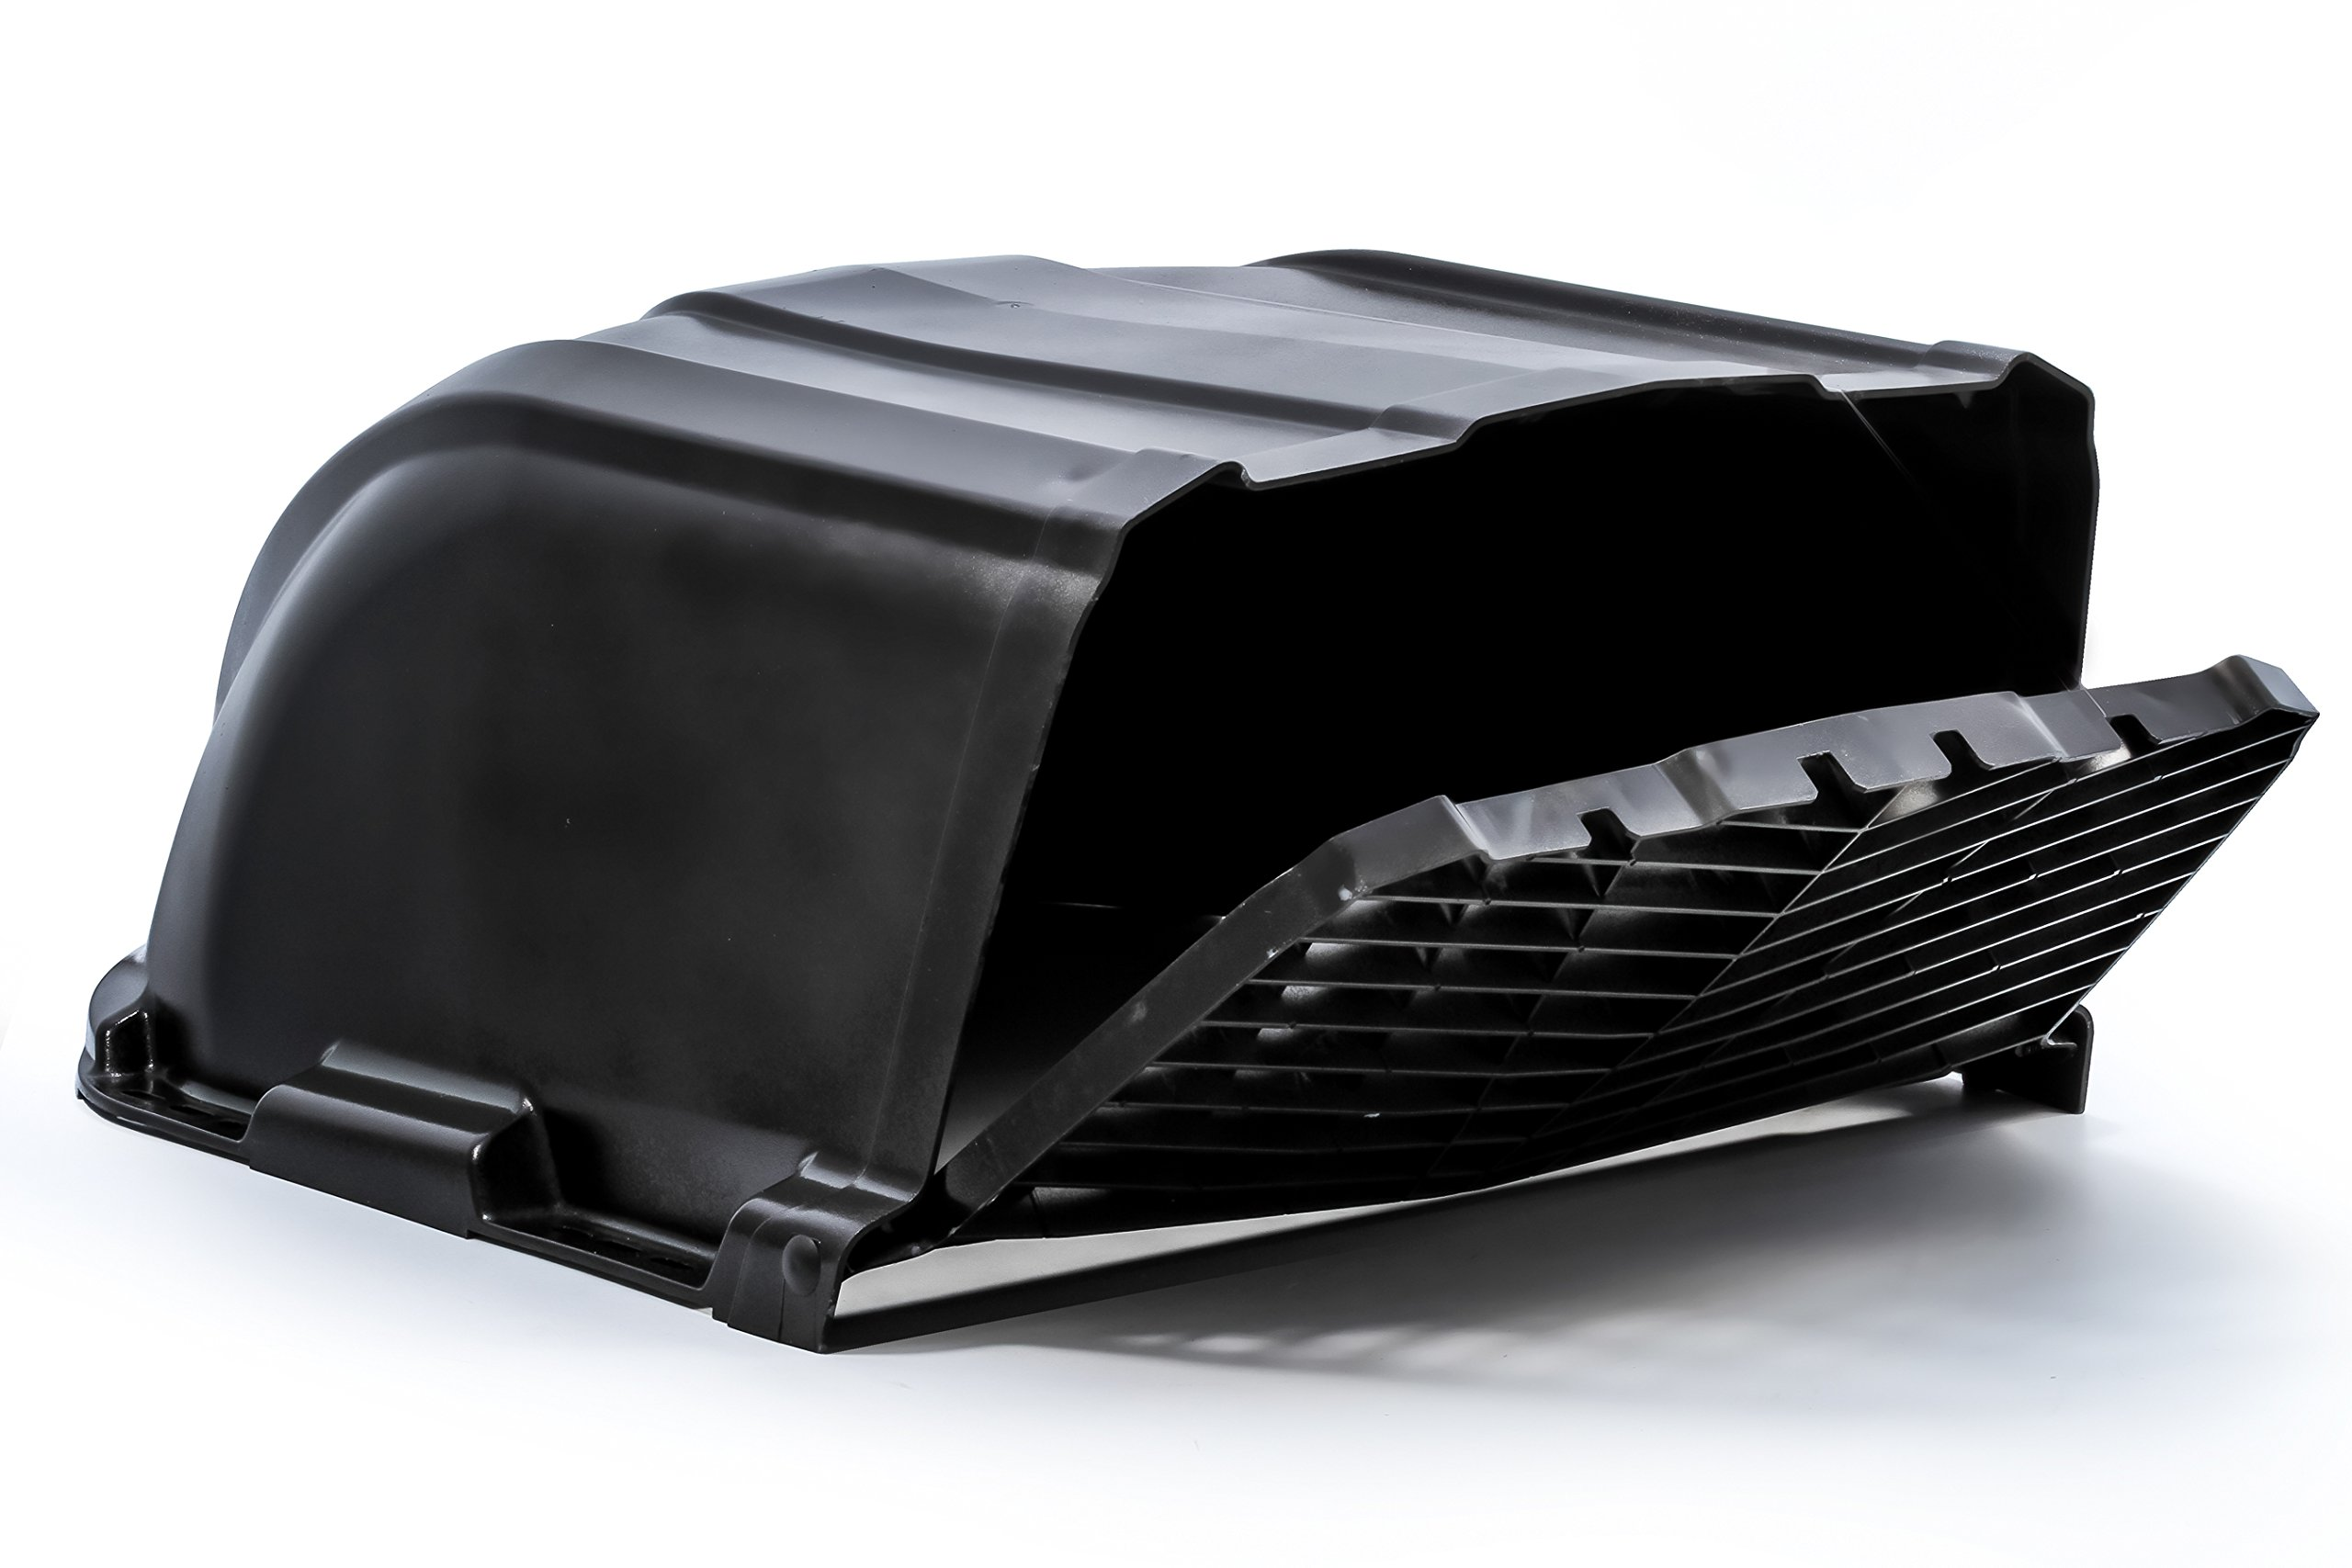 Camco RV XLT High Flow Roof Vent Cover, Opens Easy Cleaning, Aerodynamic Design, Easly Mounts to RV Included Hardware (Black)